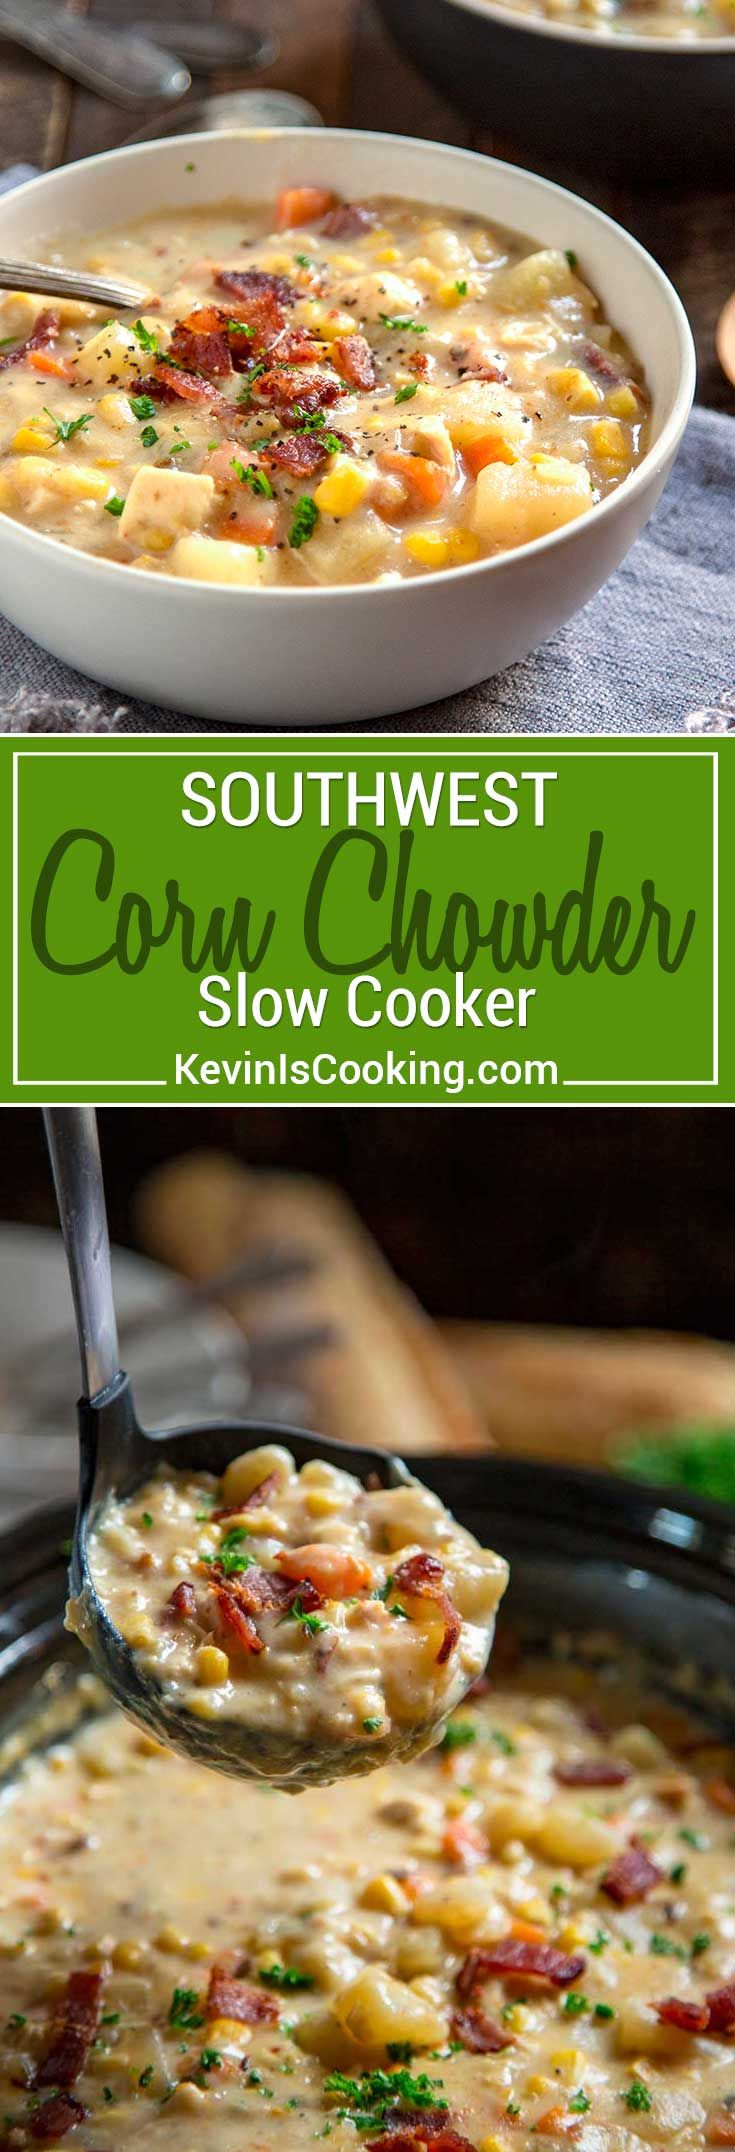 Thick and creamy with chunks of potatoes, corn and carrots, this Southwest Slow Cooker Corn Chowder gets a kick from the chipotle pepper and uses no cream! #corn #chowder #slowcooker via @keviniscooking